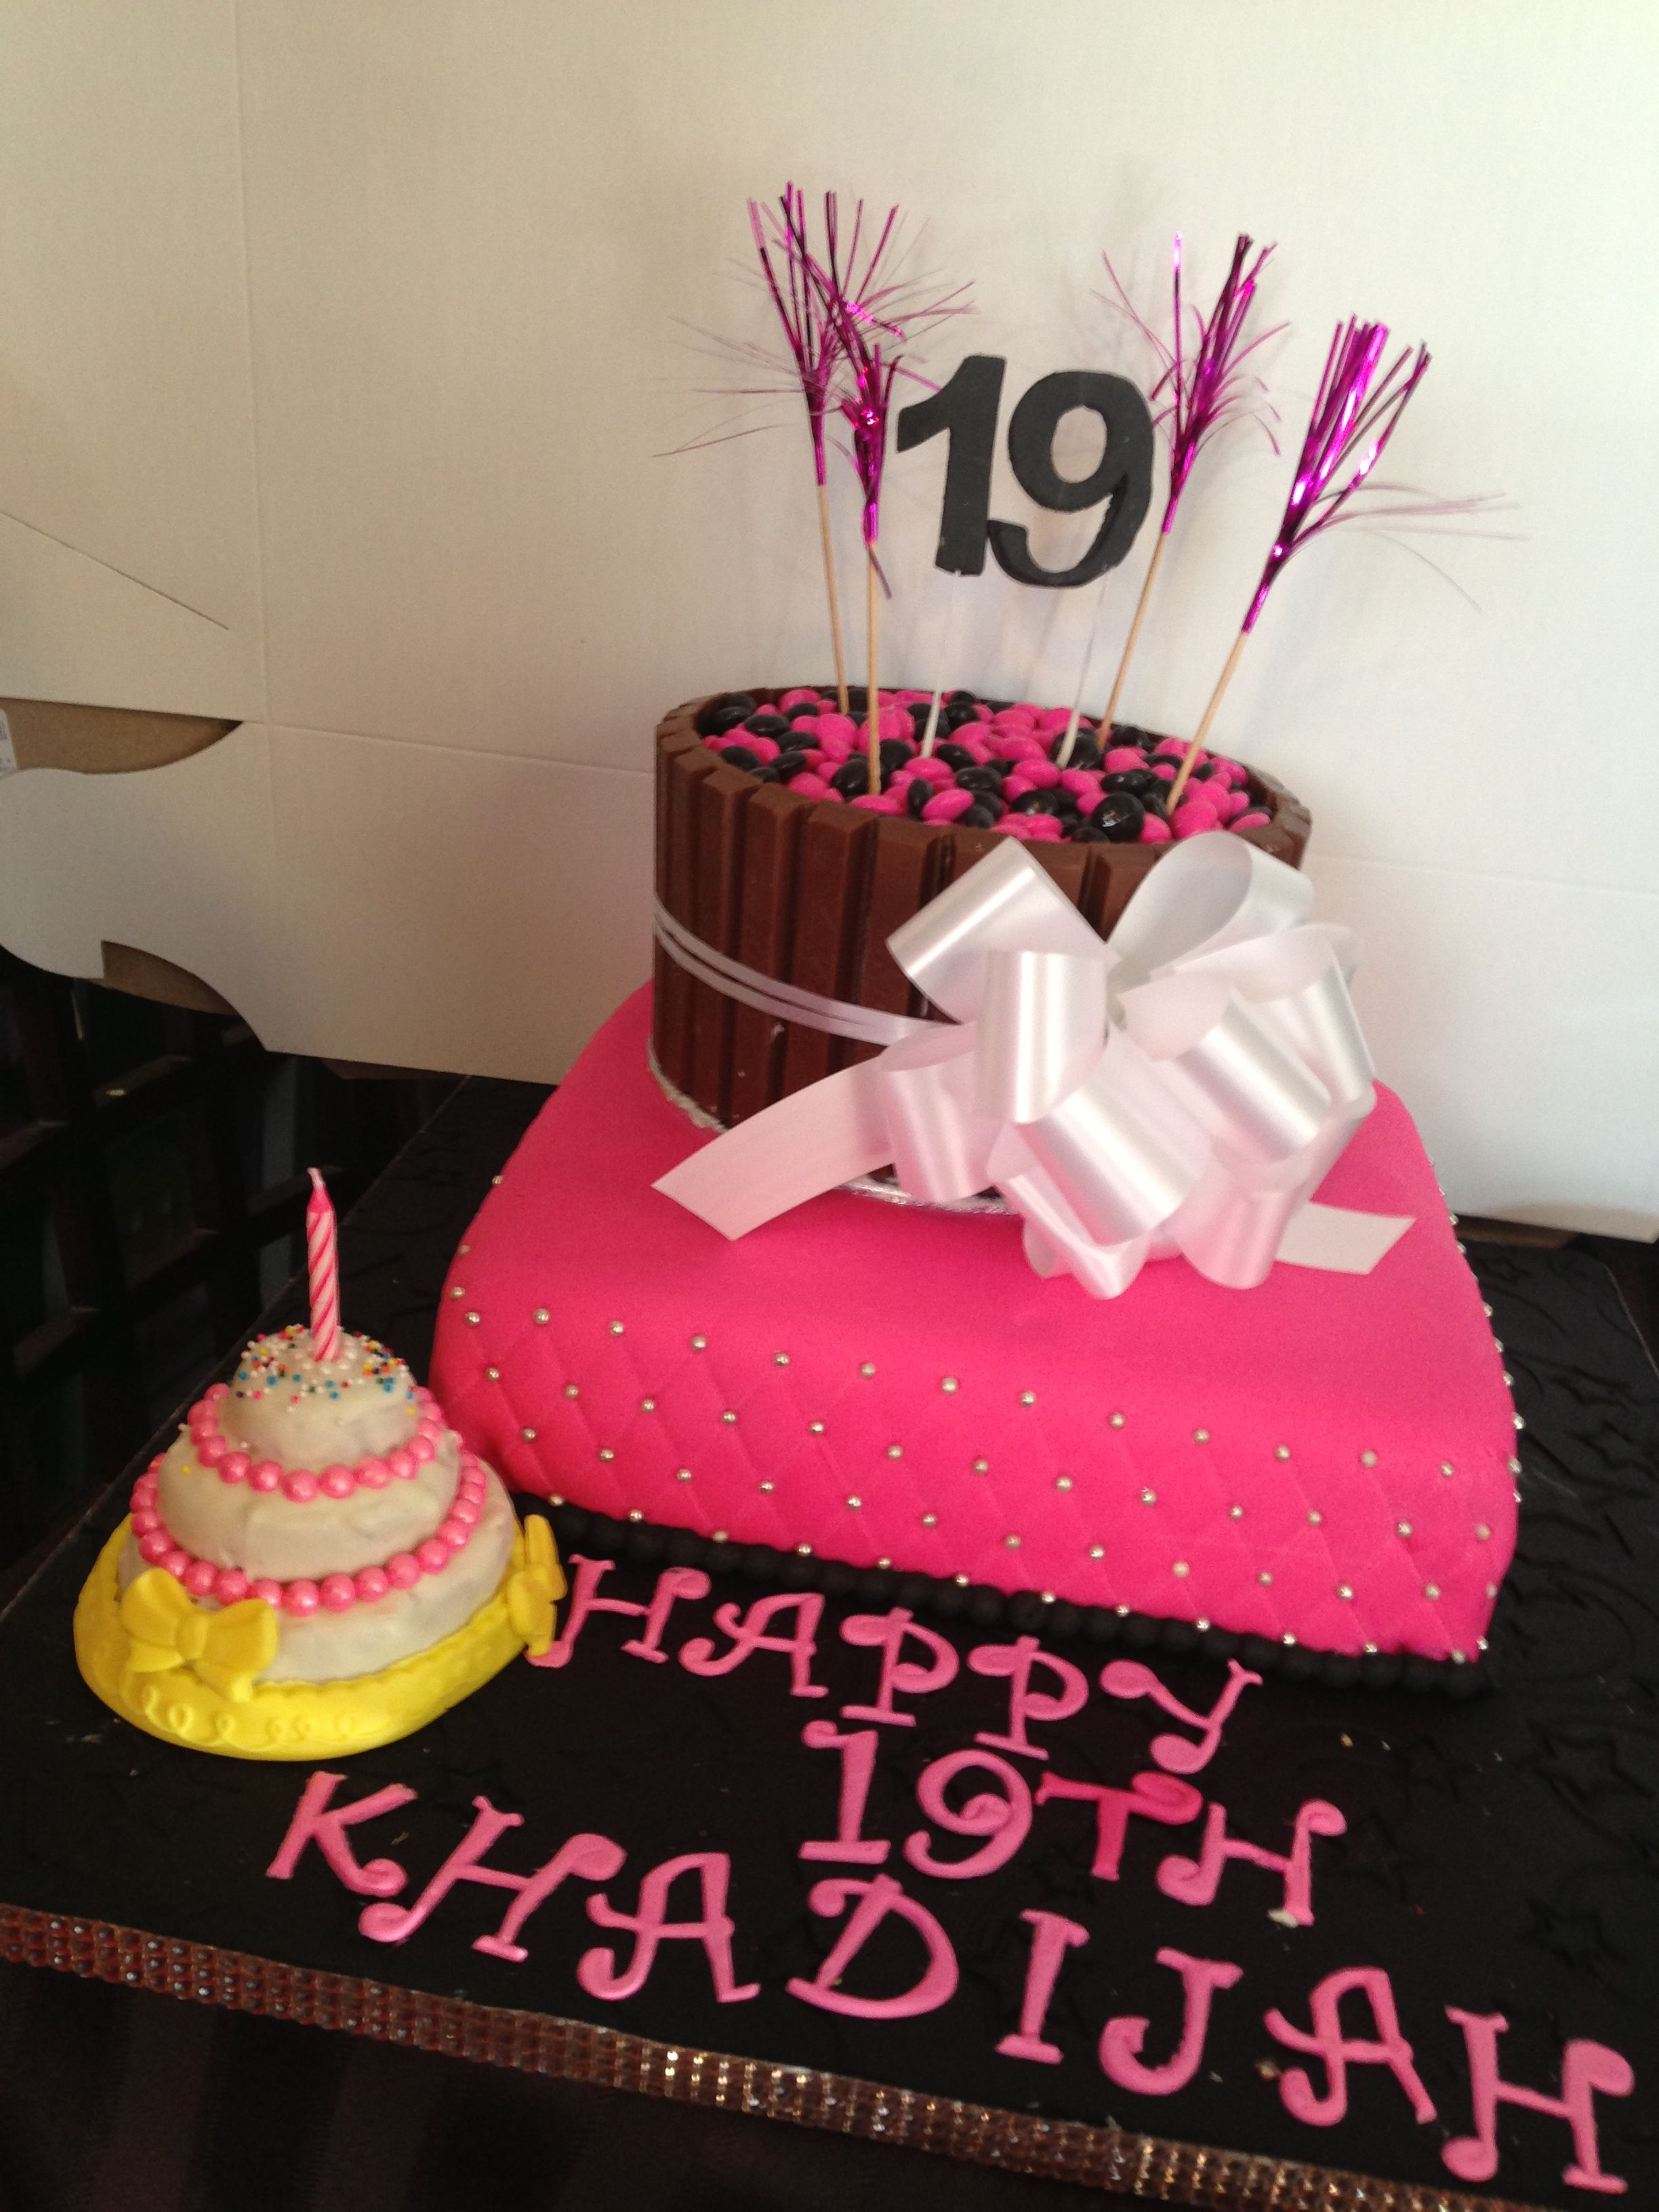 Pretty 19th Birthday Cake All Put Together Looks Delicious